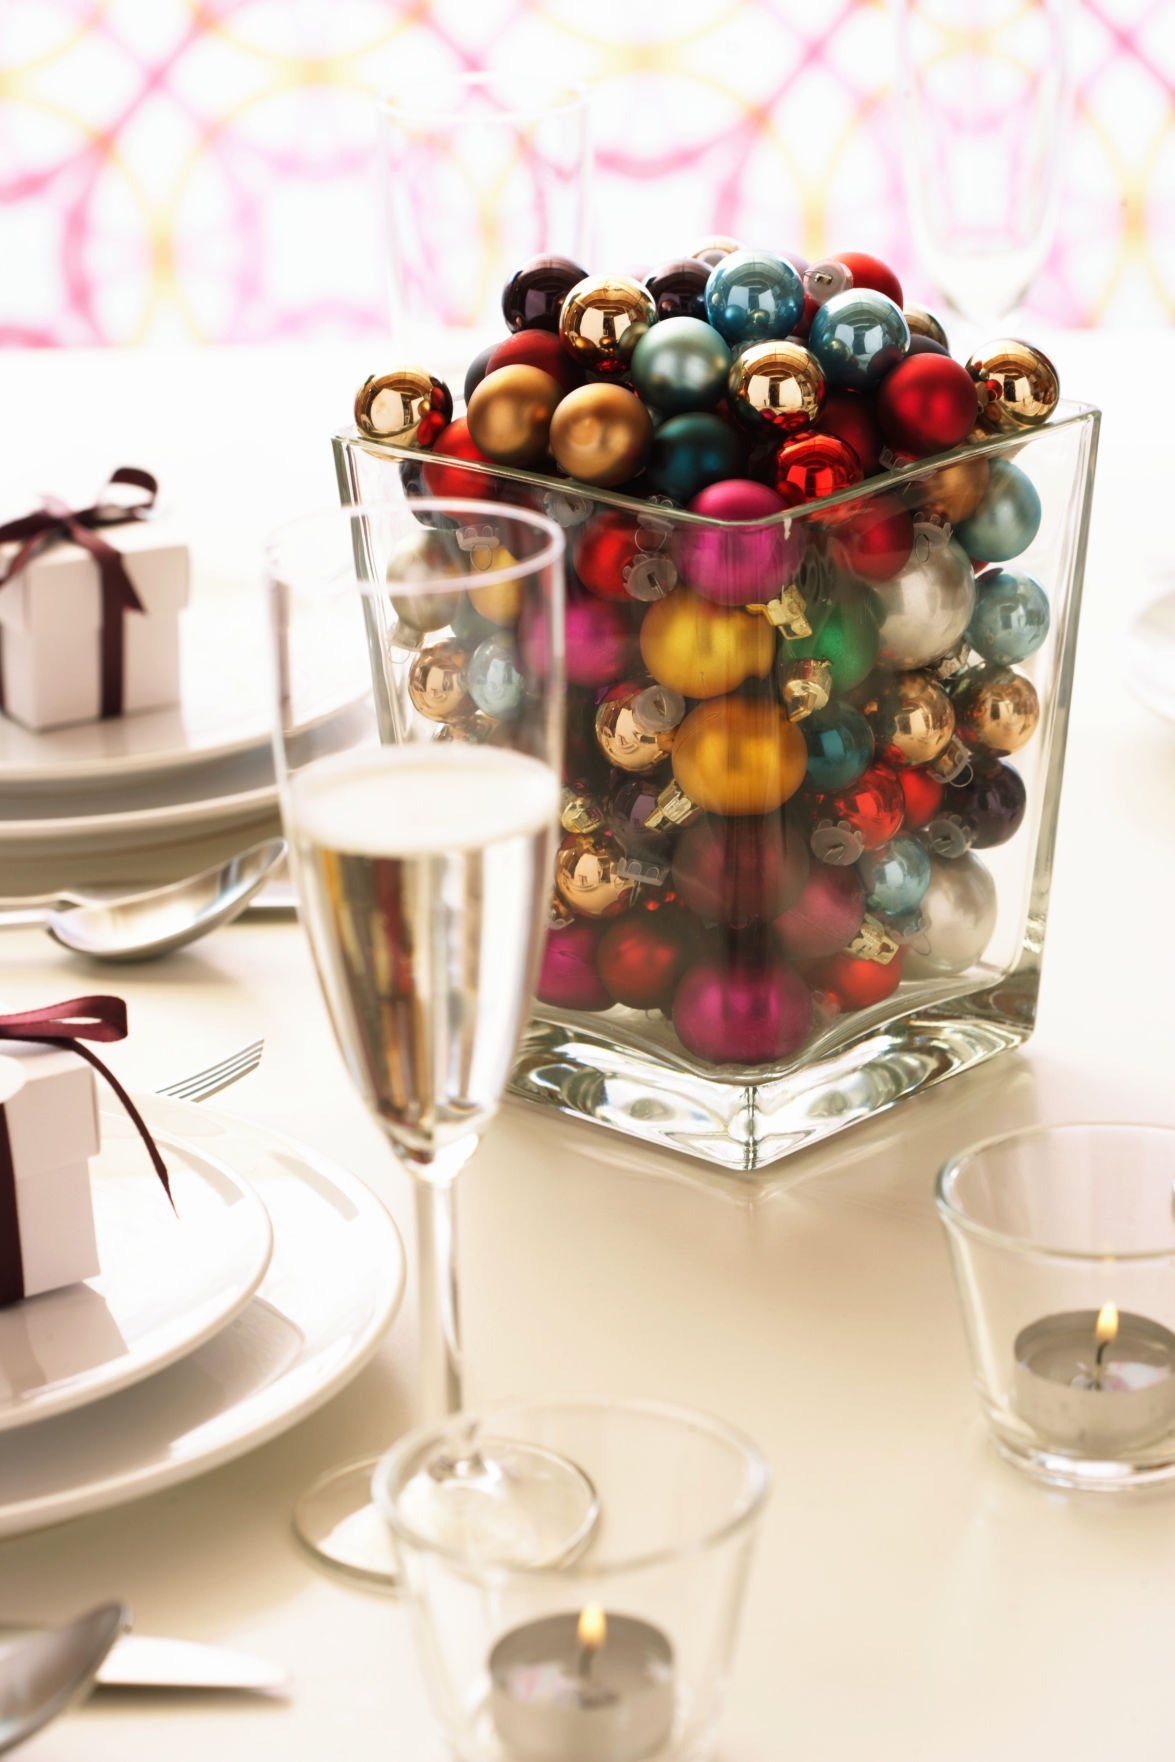 Use Your Glass Containers To Make Stunning Holiday D 233 Cor Home And Garden Nwitimes Com